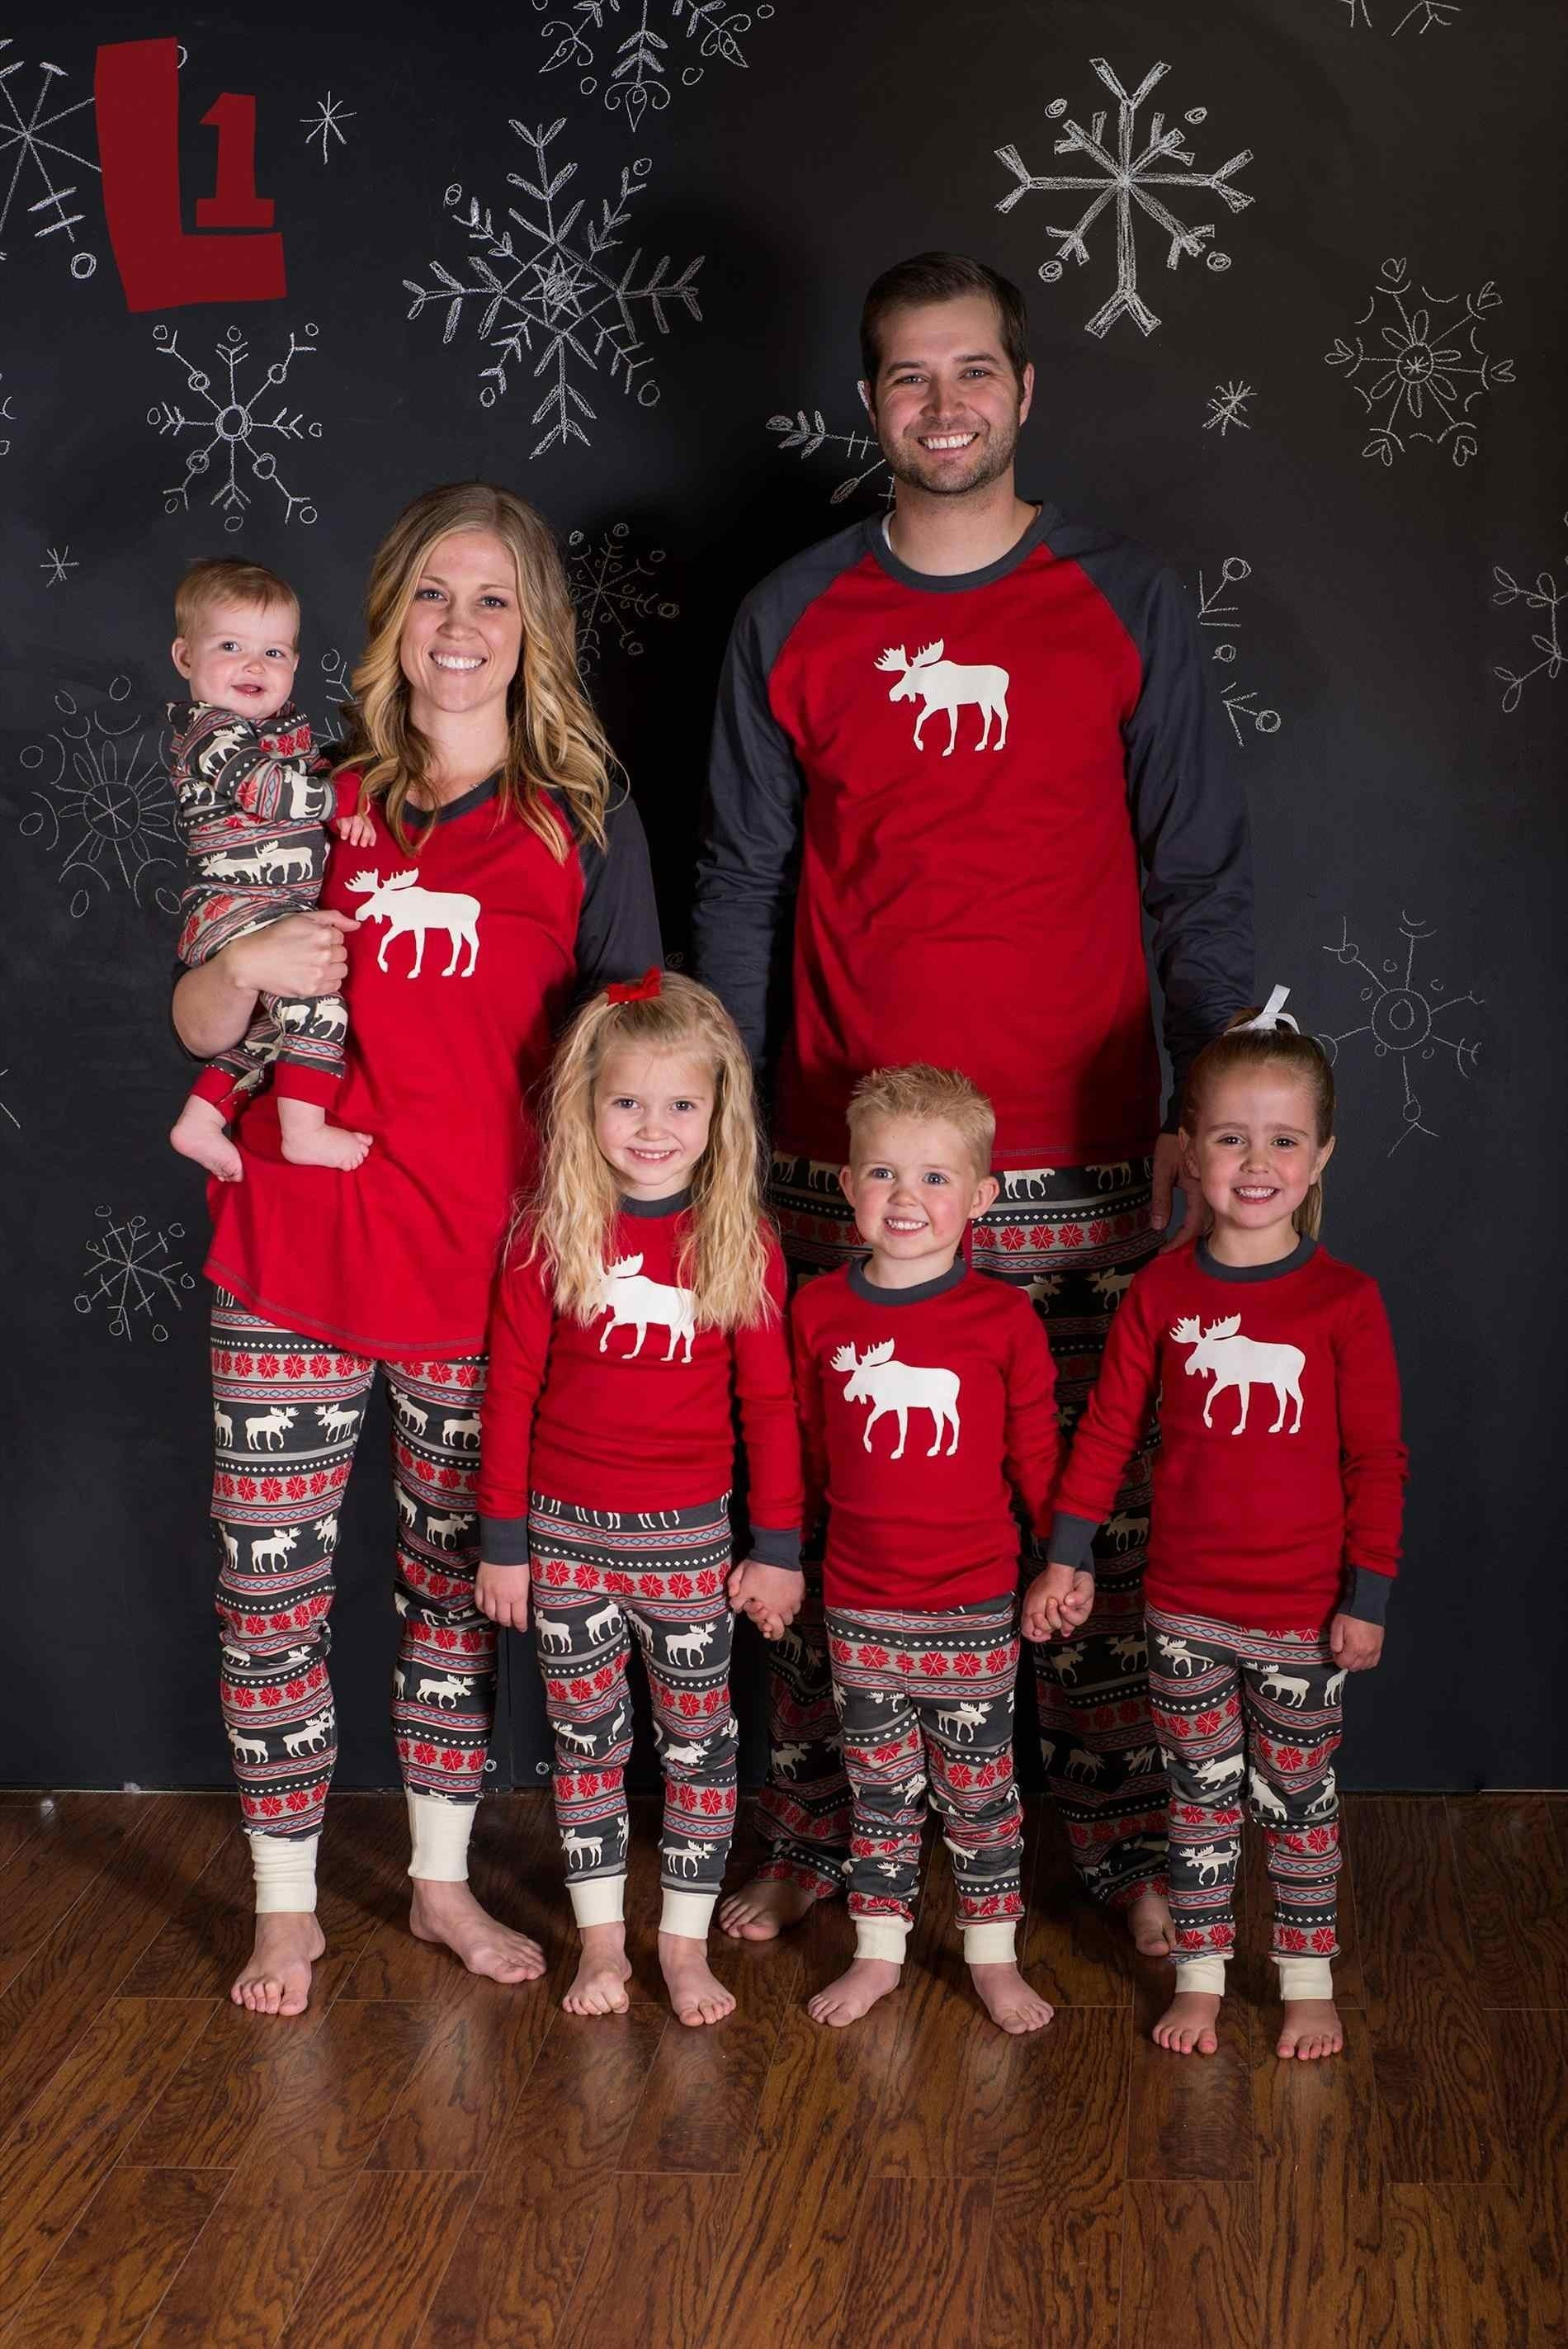 10 Elegant Ideas For Family Christmas Pictures family christmas picture ideas portrait fashion commercial